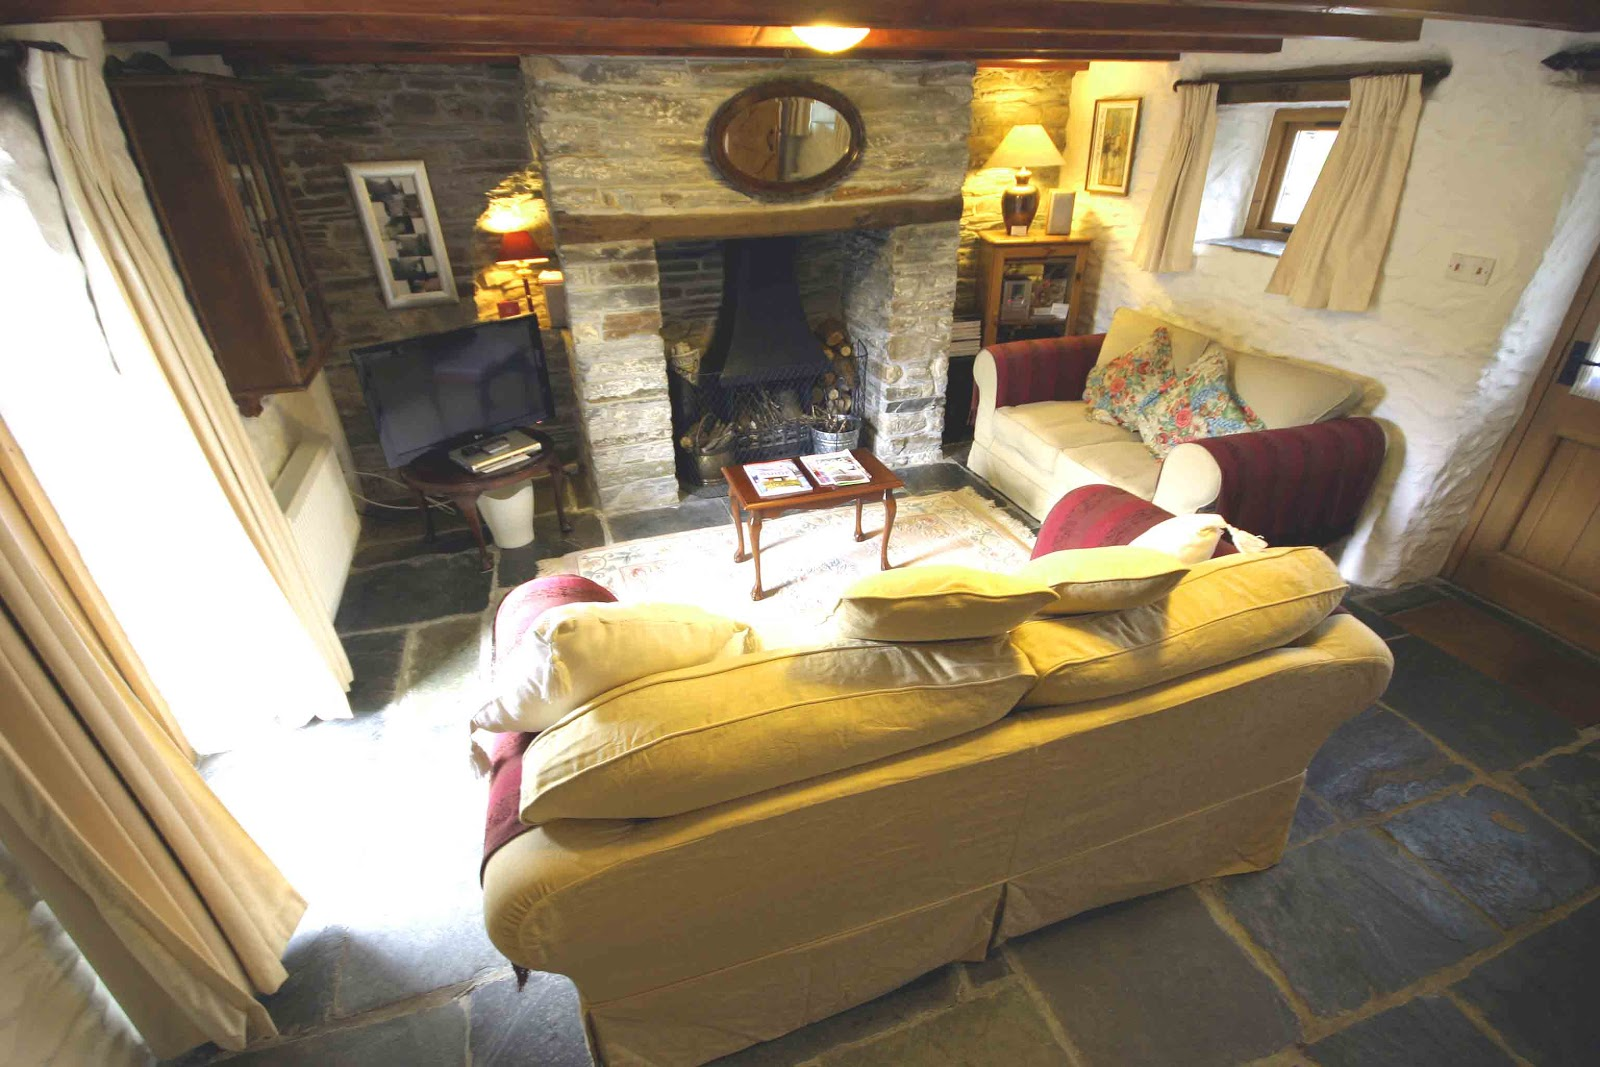 Places To Buy Sofas In Cornwall Reclining Sectional For Sale Rooky 39s Nook Luxury Self Catering Holiday Cottage